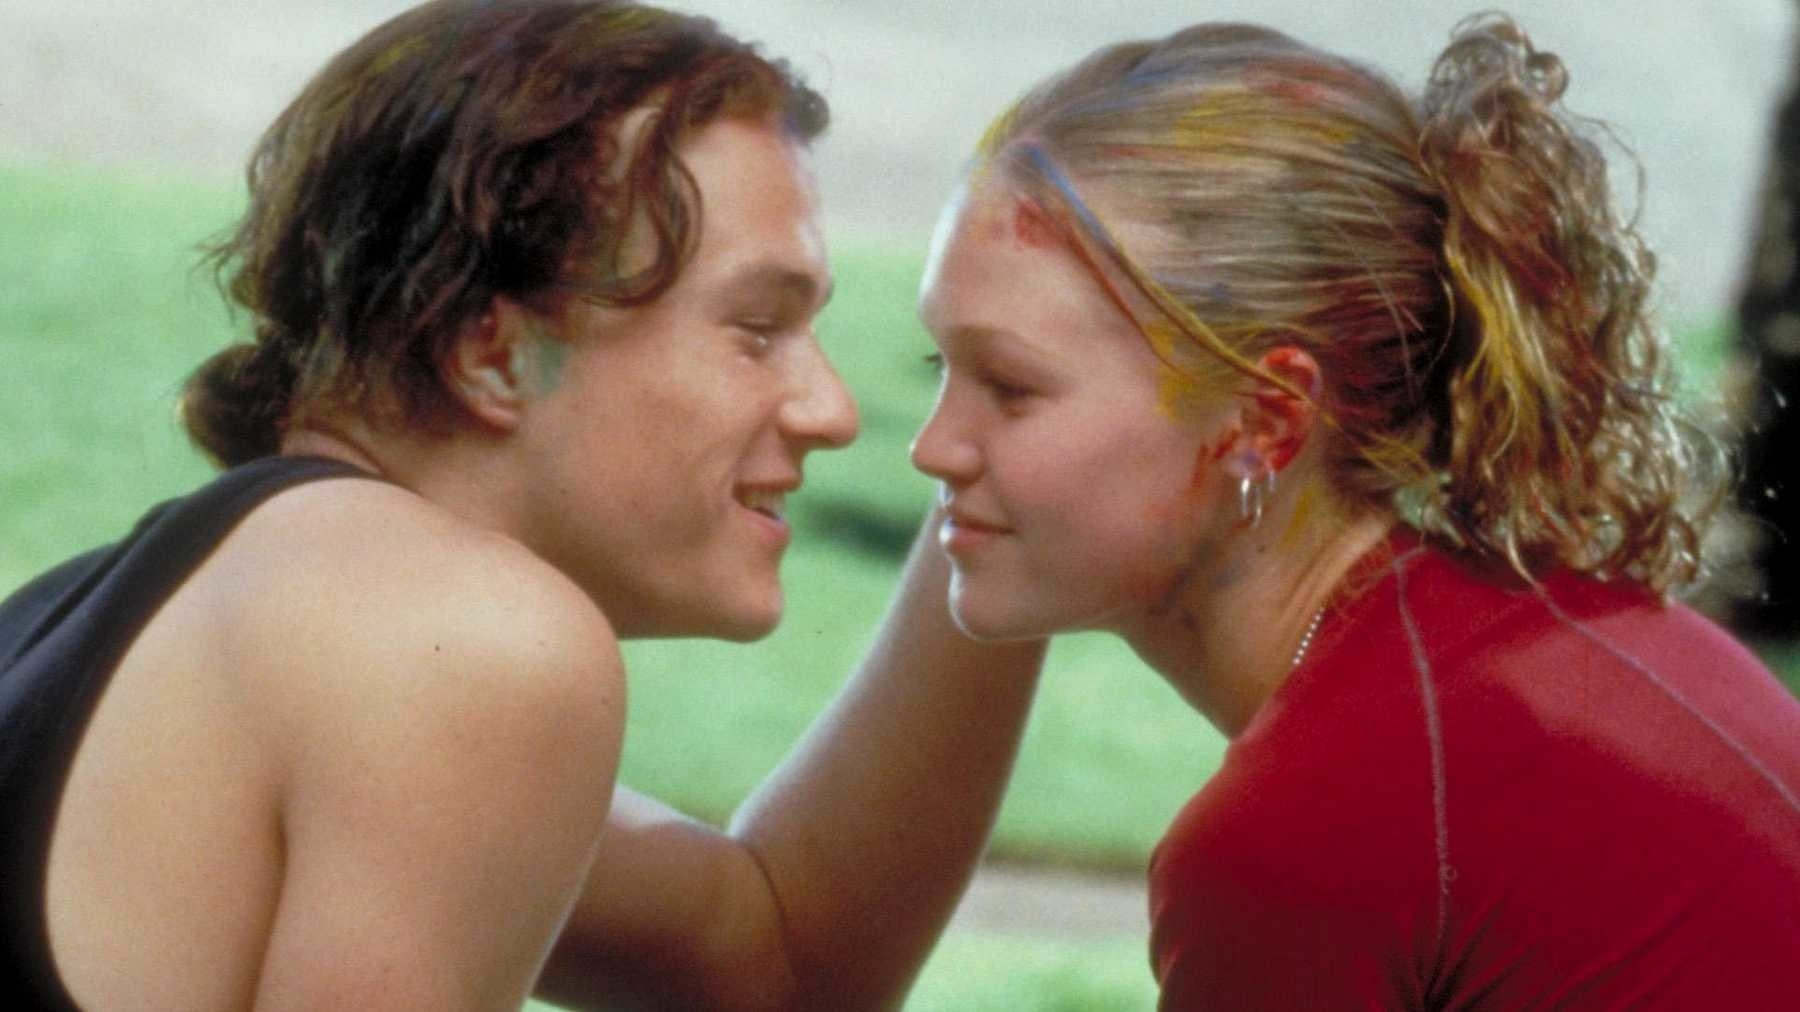 Heath Ledger (Patrick) and Julia Stiles (Kat) leaning in for a kiss